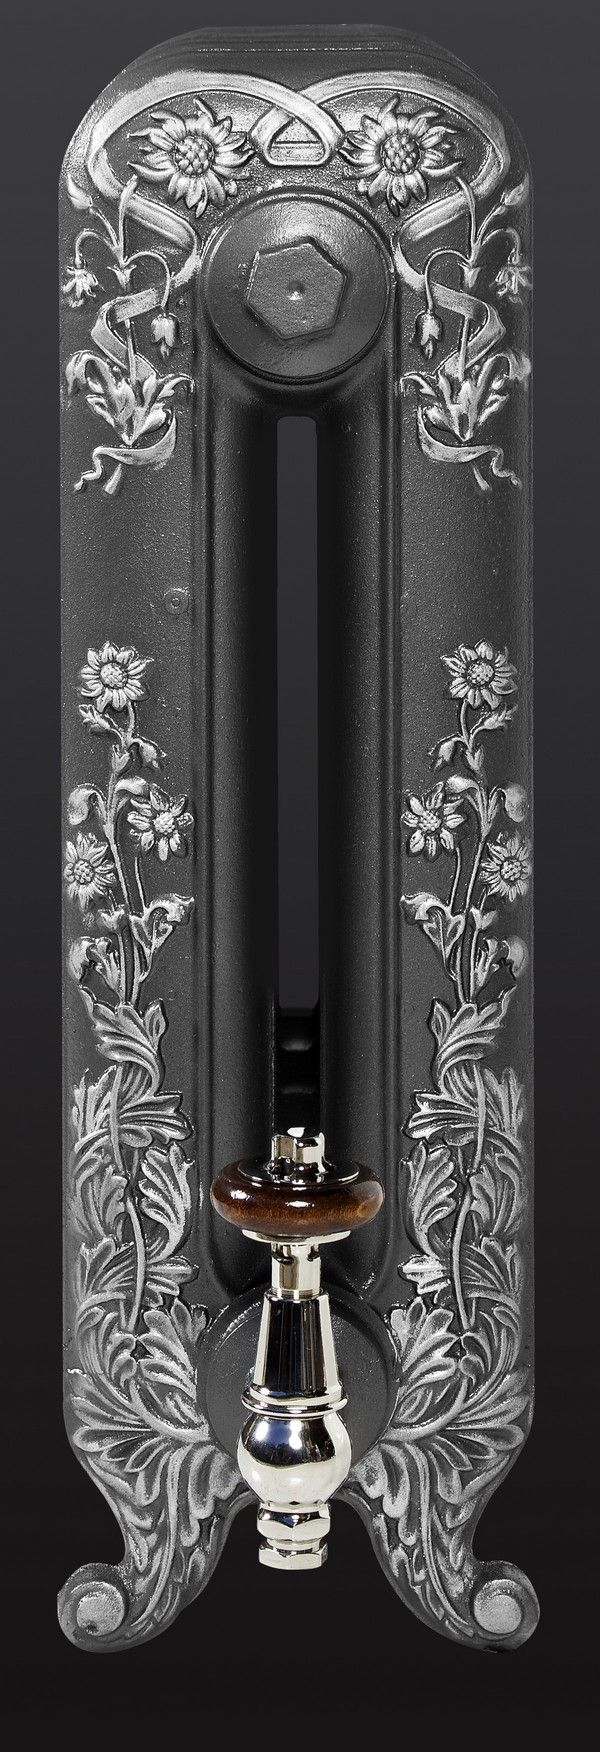 best 25 cast iron radiators ideas on pinterest victorian radiators antique cast iron stove. Black Bedroom Furniture Sets. Home Design Ideas